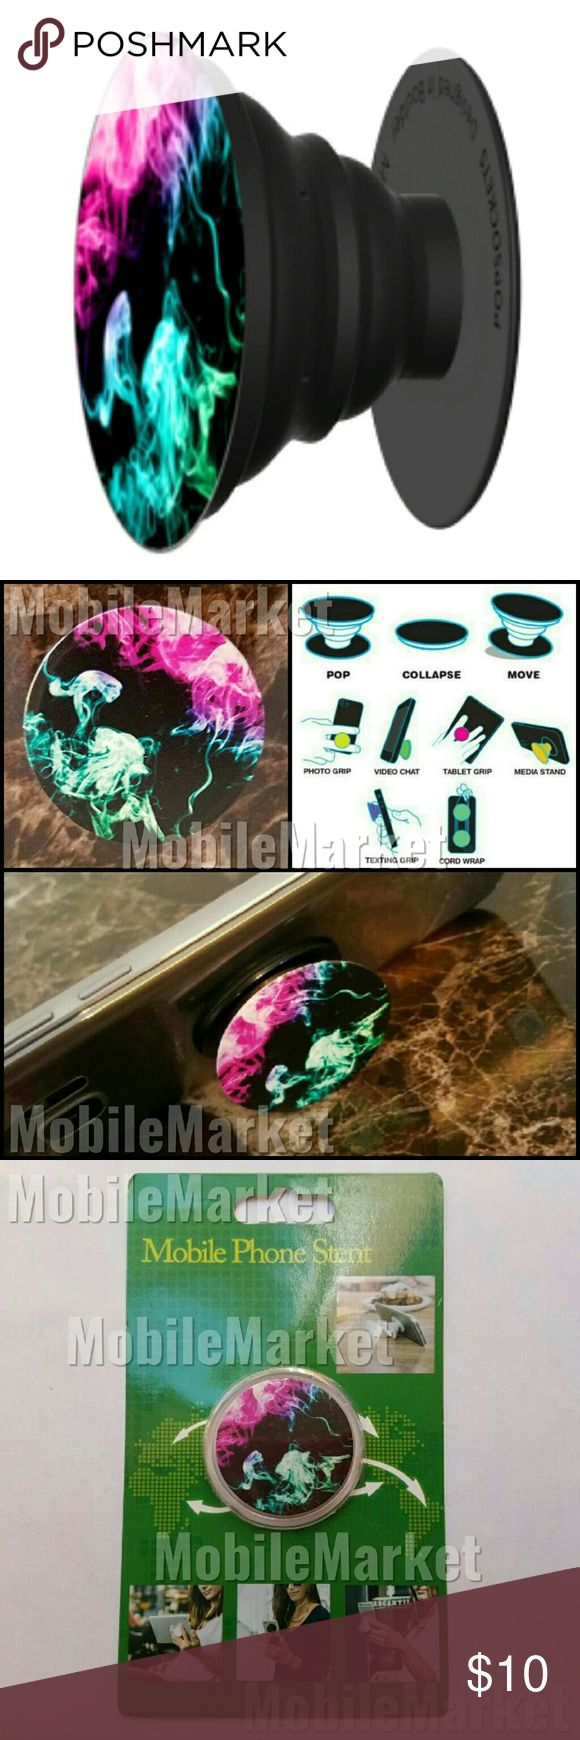 Mobile phone grip/stand color smoke *this is an individual listing for 1 phone stand, color is according to first picture*  Pop, tilt, wrap, grip, collapse, repeat! Mobile phone stent like a pop socket (popsocket). Have a secure grip while calling, taking selfies, and texting. Use as a phone stand, portrait and landscape mode. and even to wrap your headphones around and prevent tangles and knots!! Retail packaging makes it the perfect gift! Accessories